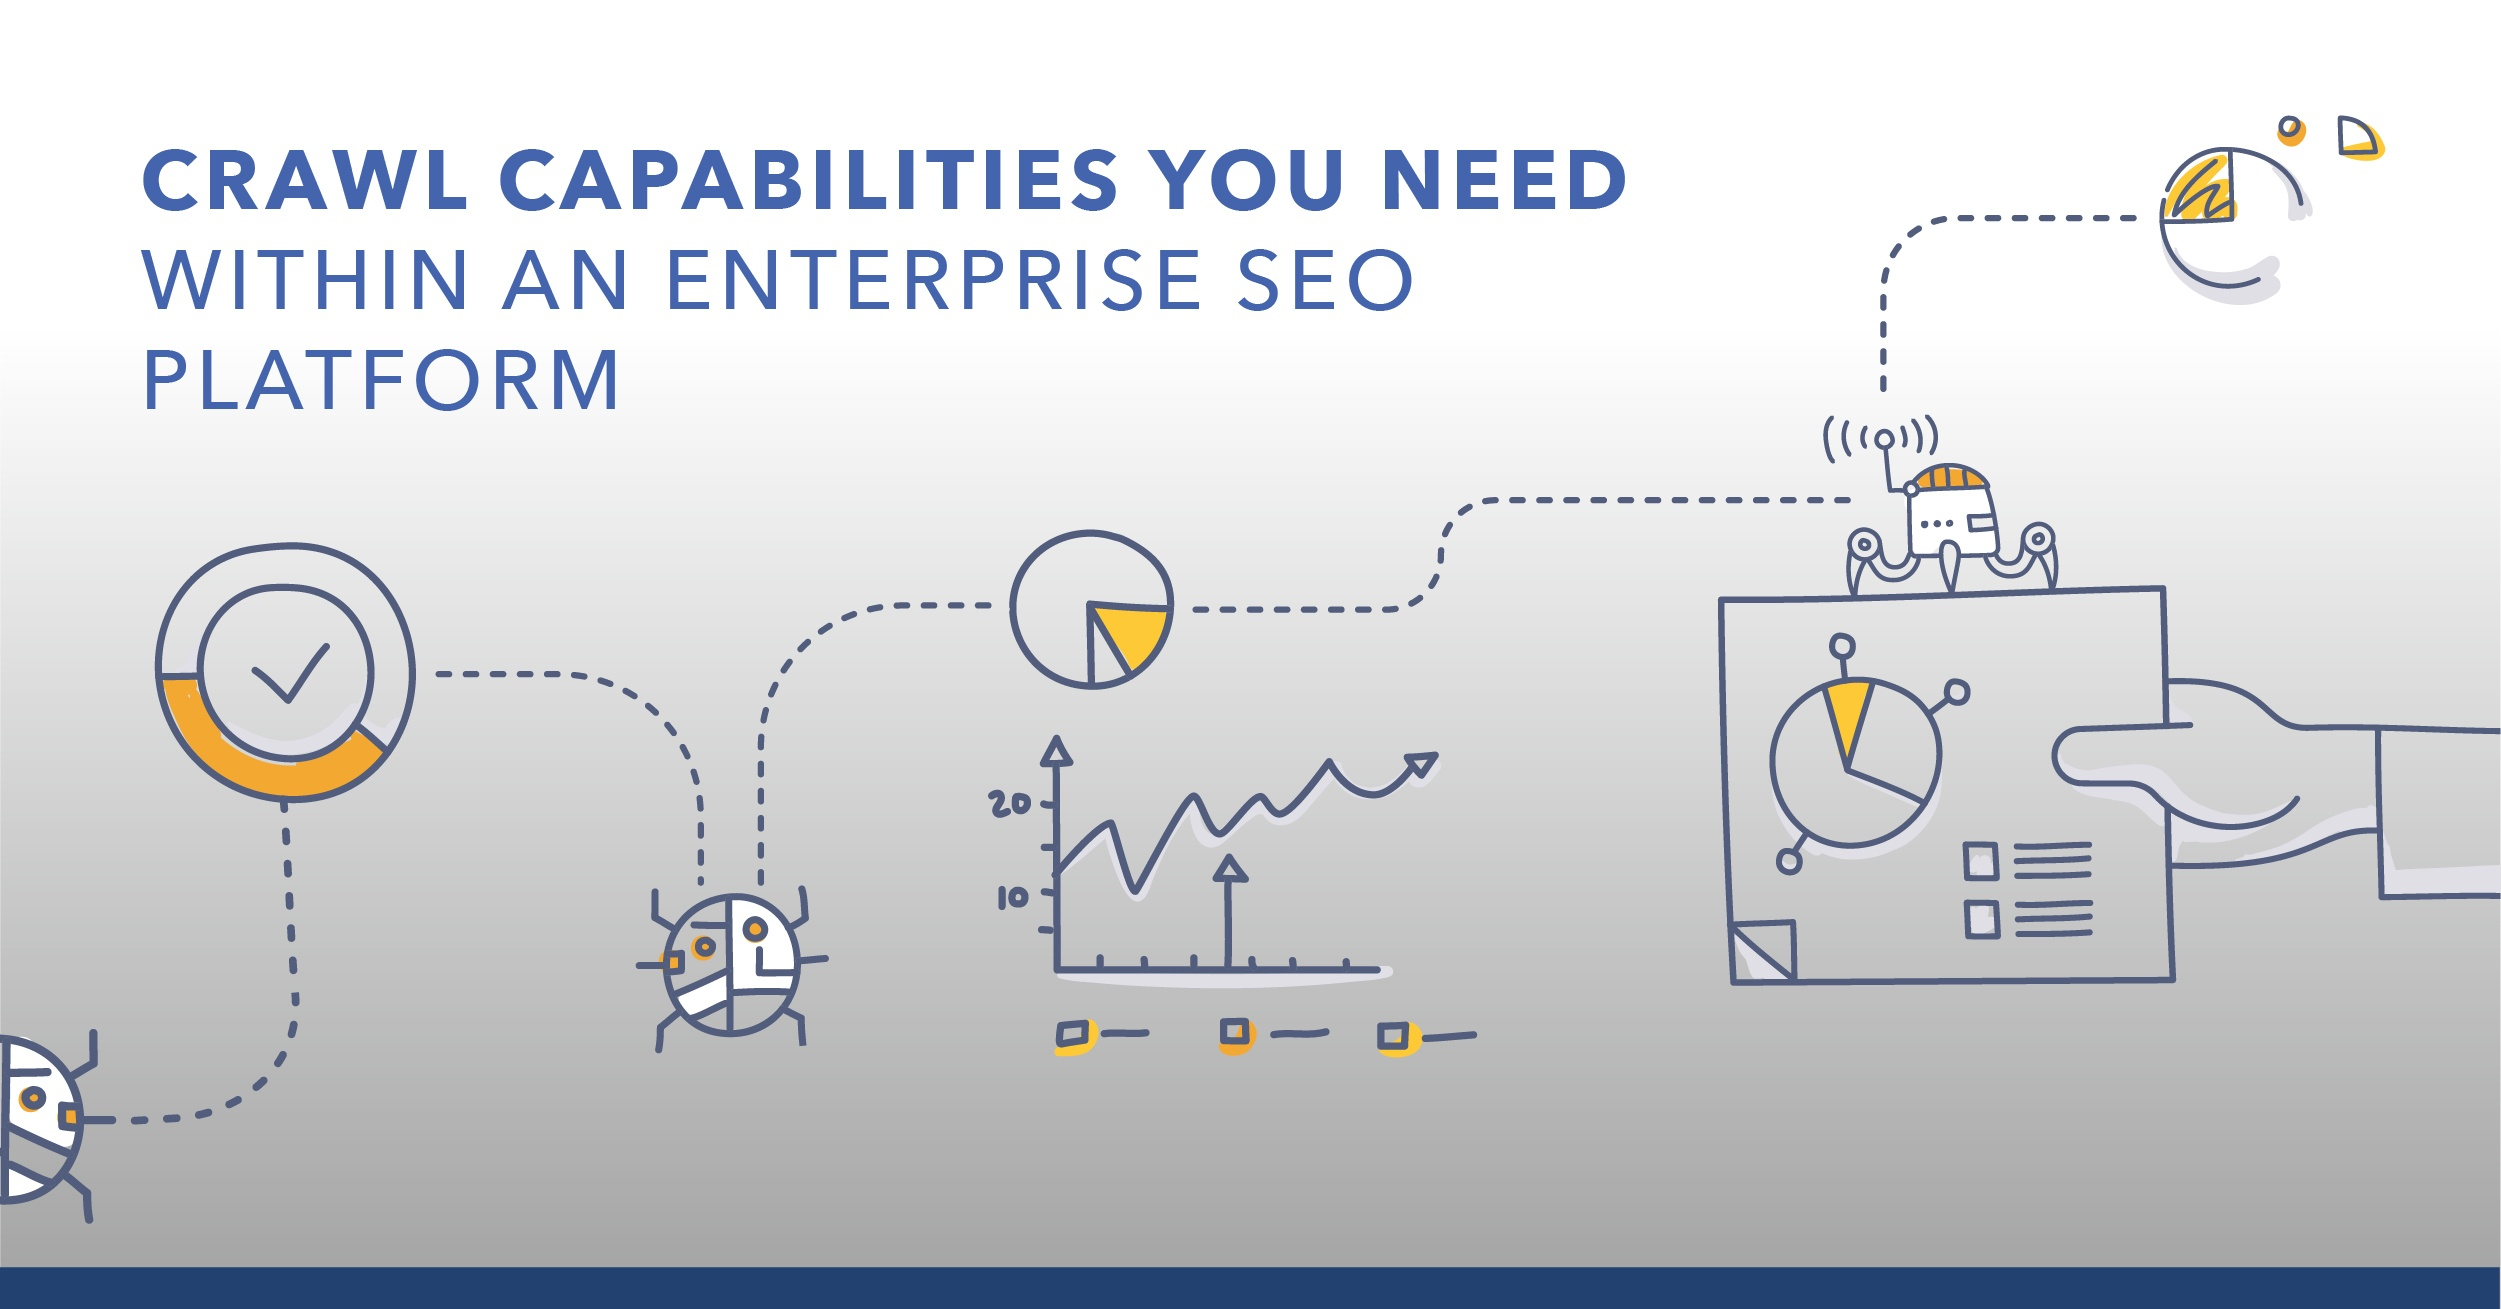 Crawl Capabilities You Need Within an Enterprise SEO Platform - Featured Image